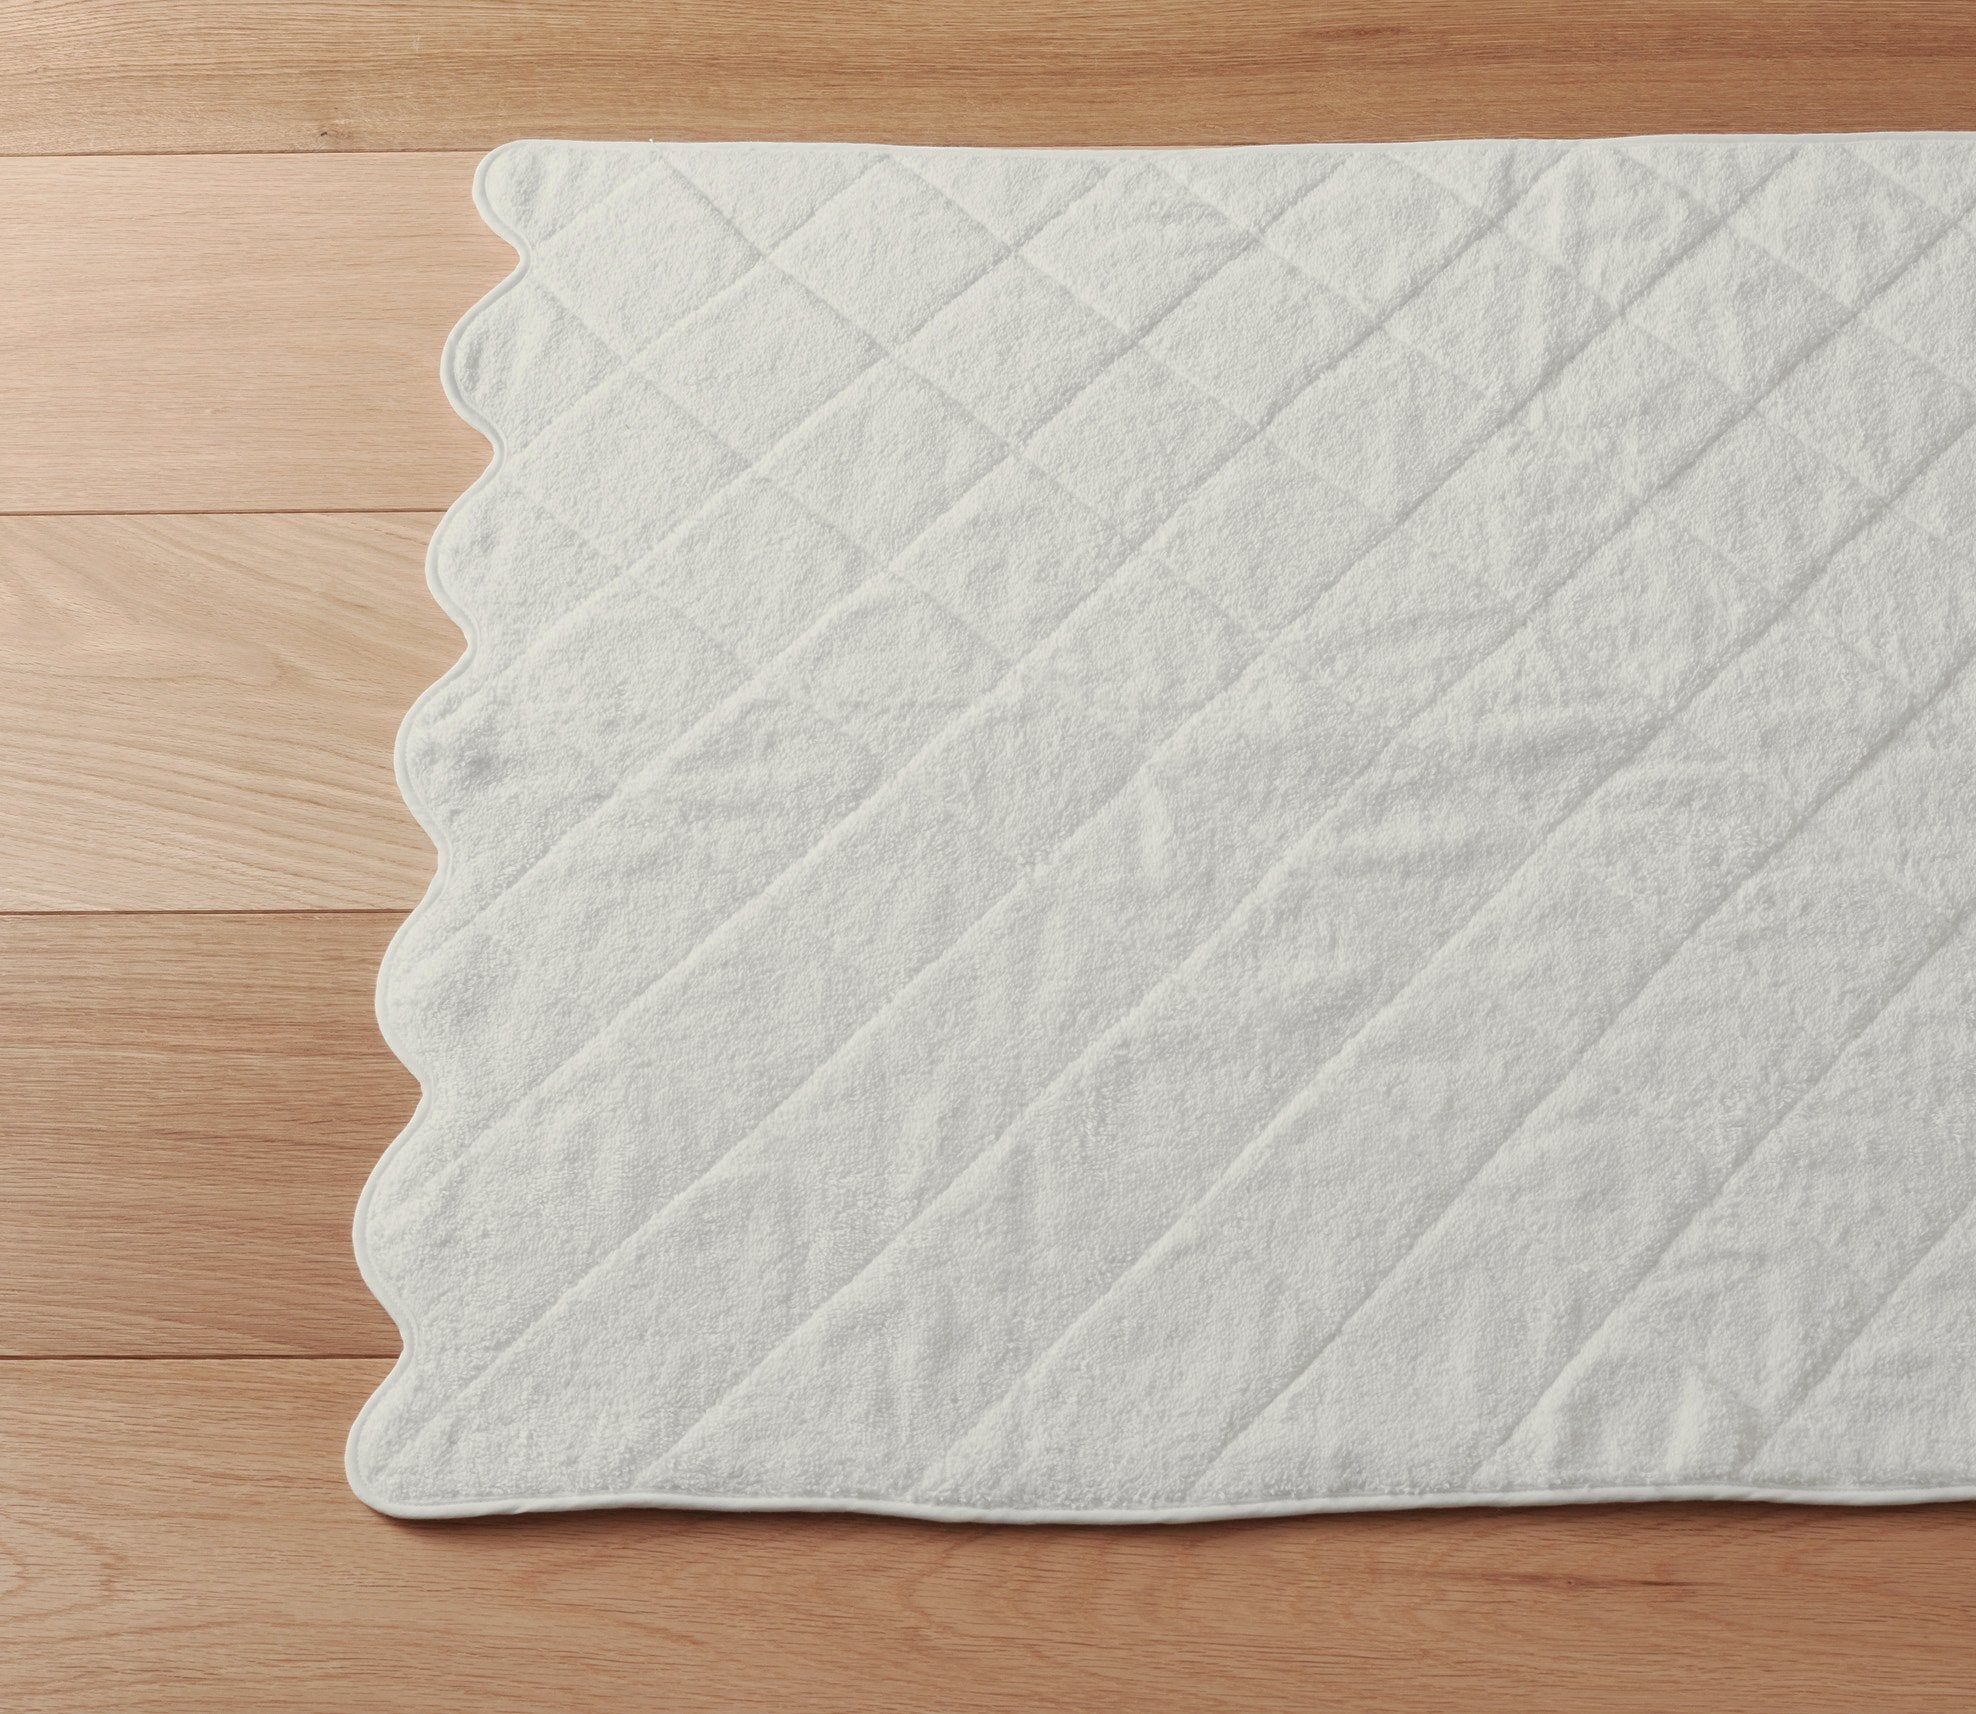 Scallop Ivory Bath Towels Product Image 2